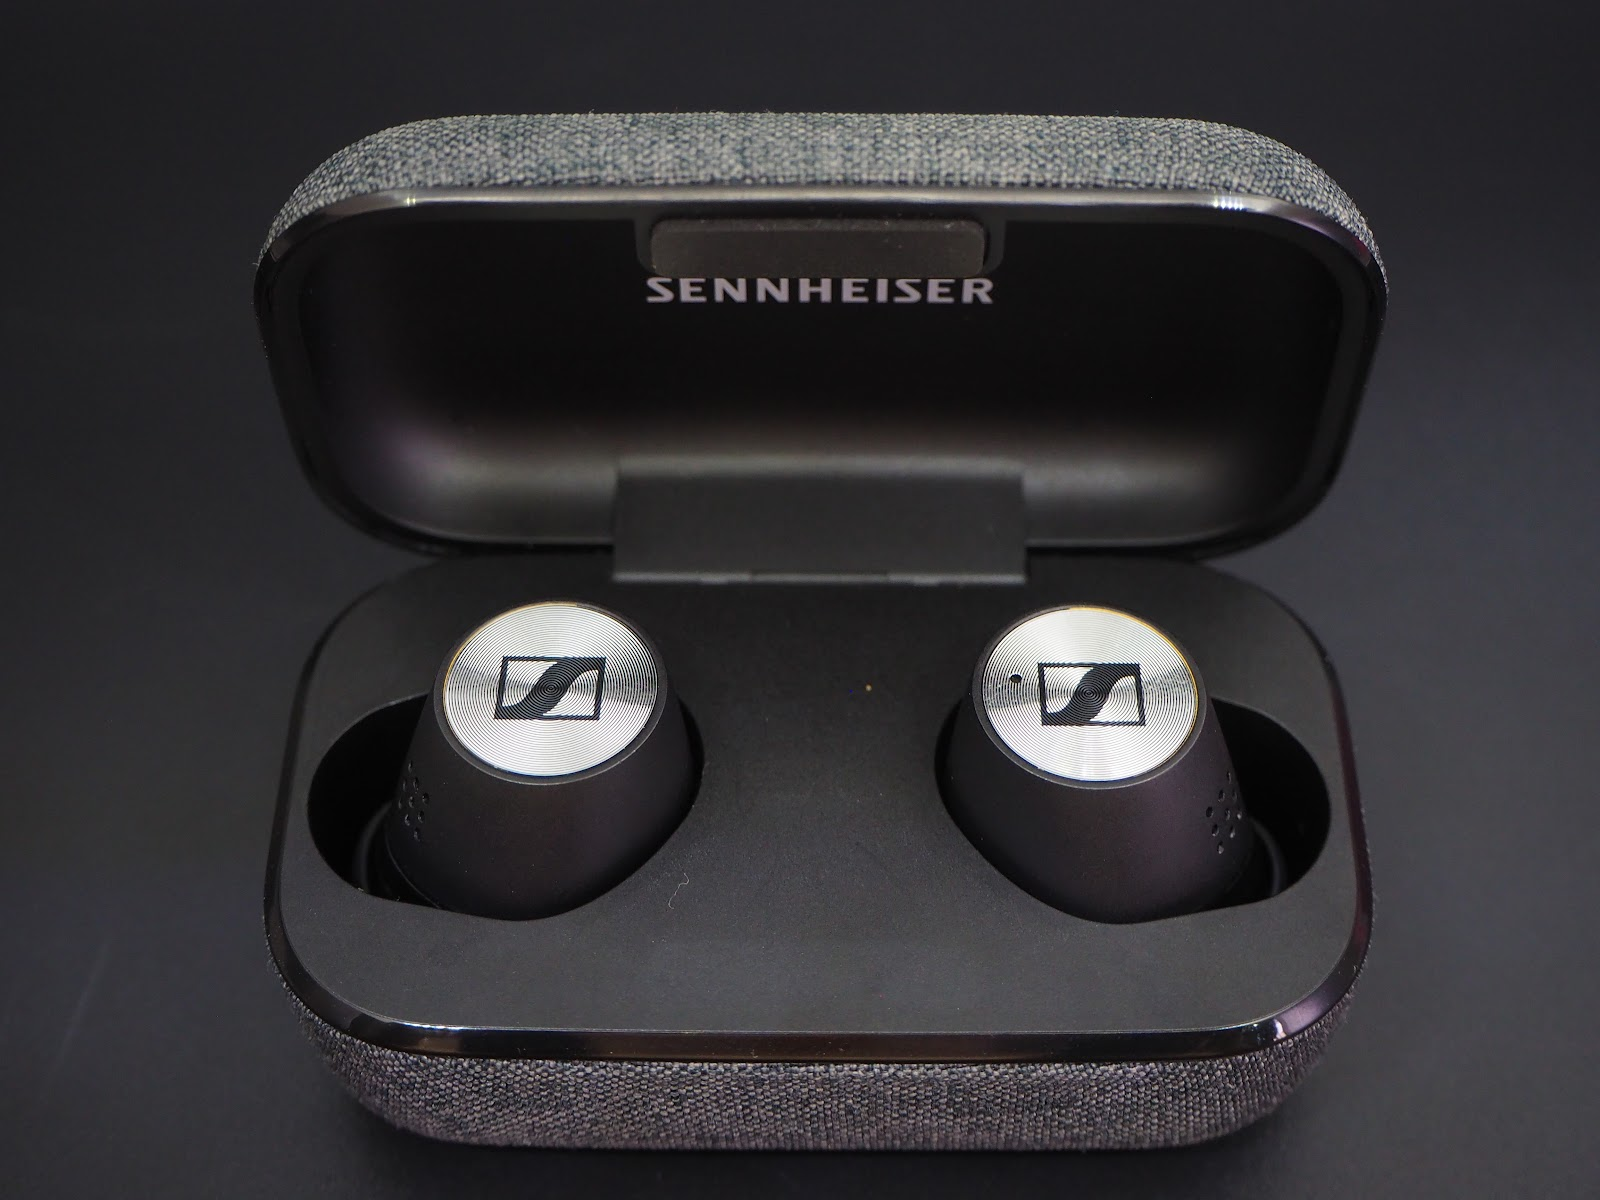 Sennheiser MOMENTUM True Wireless 2 stored and charged in the case